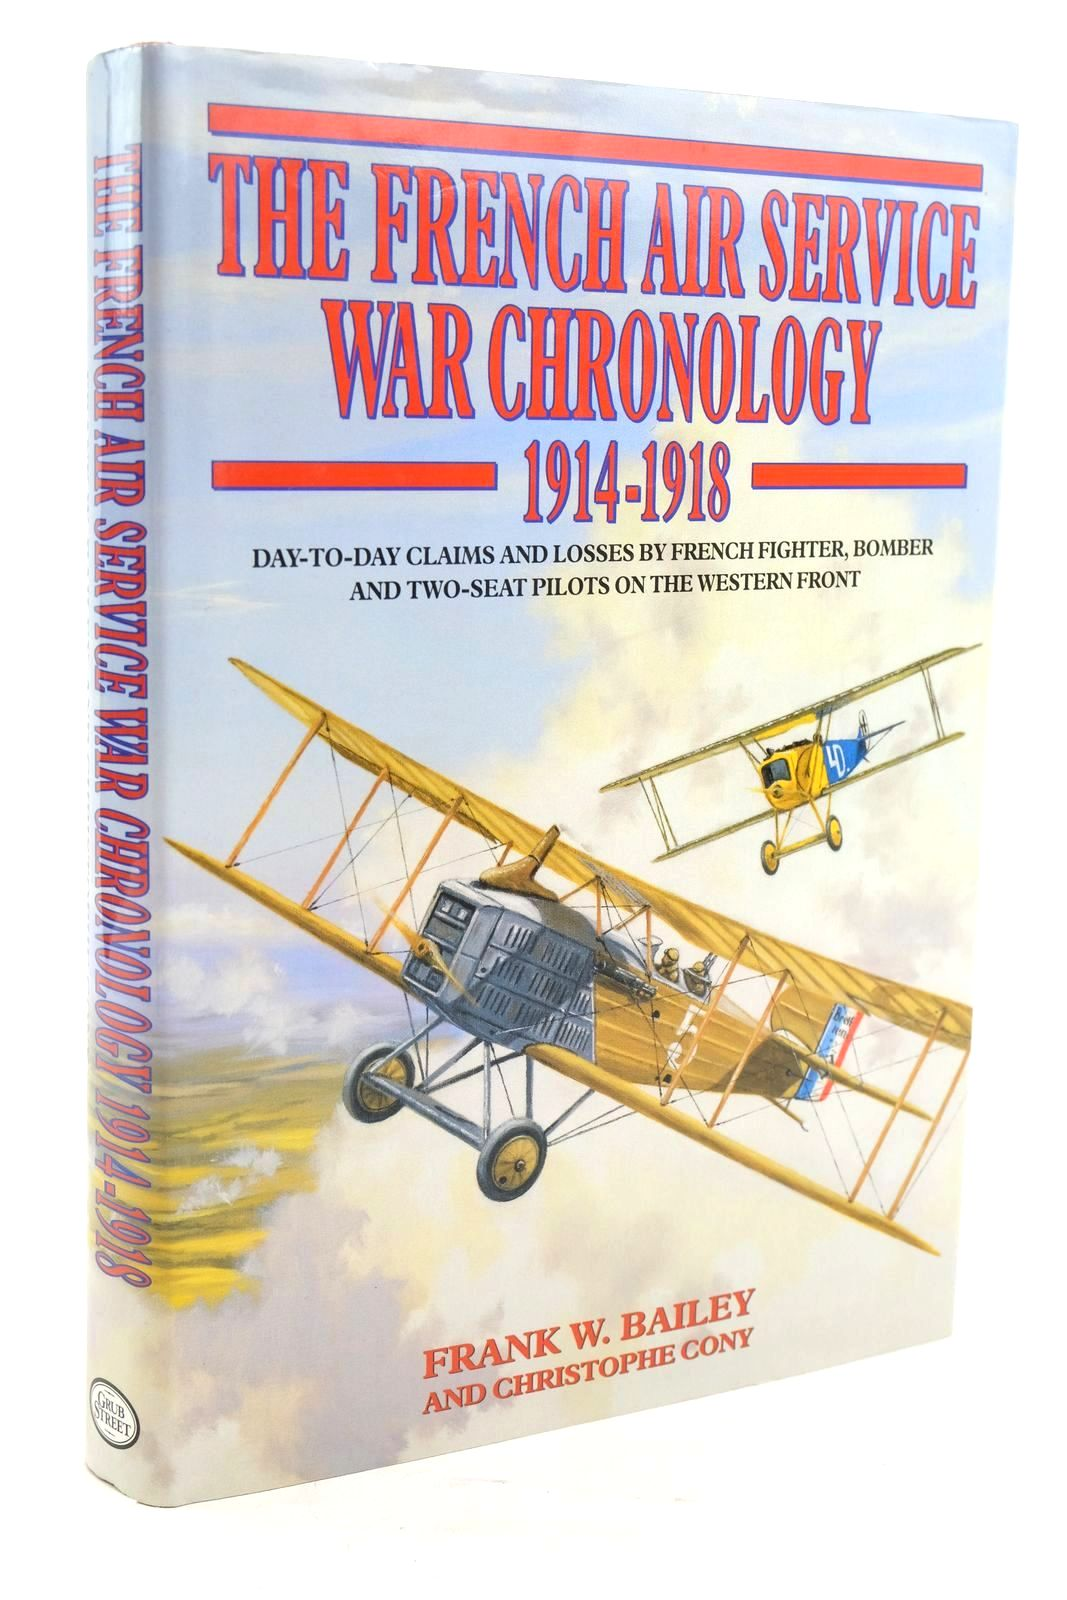 Photo of FRENCH AIR SERVICE WAR CHRONOLOGY 1914-1918 written by Bailey, Frank W. Cony, Christophe published by Grub Street (STOCK CODE: 1320180)  for sale by Stella & Rose's Books